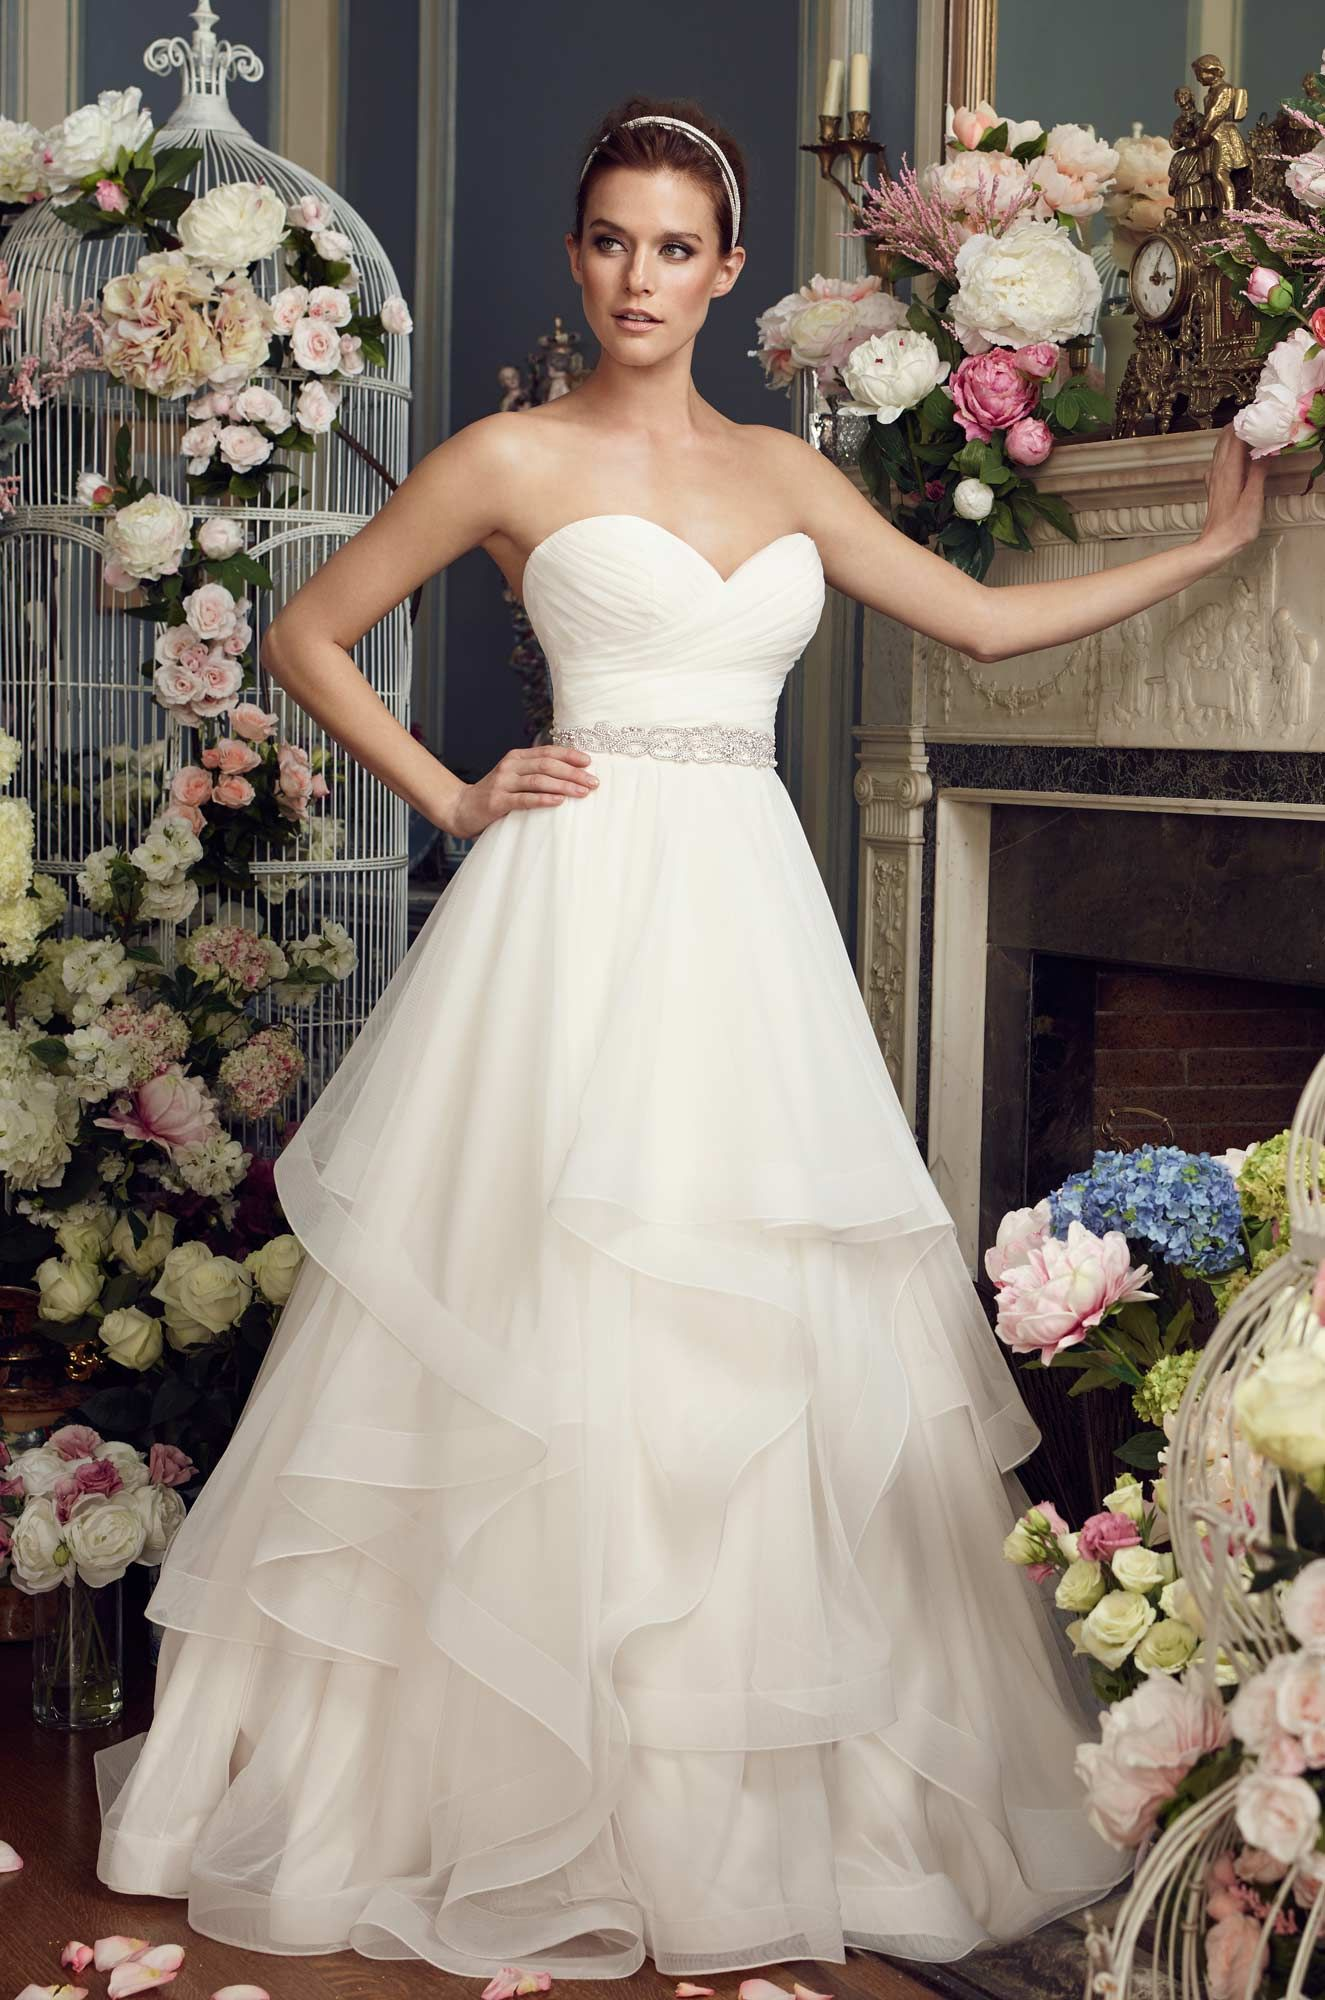 Whimsical Tiered Wedding Dress - Style  2164  7f69e6f9186